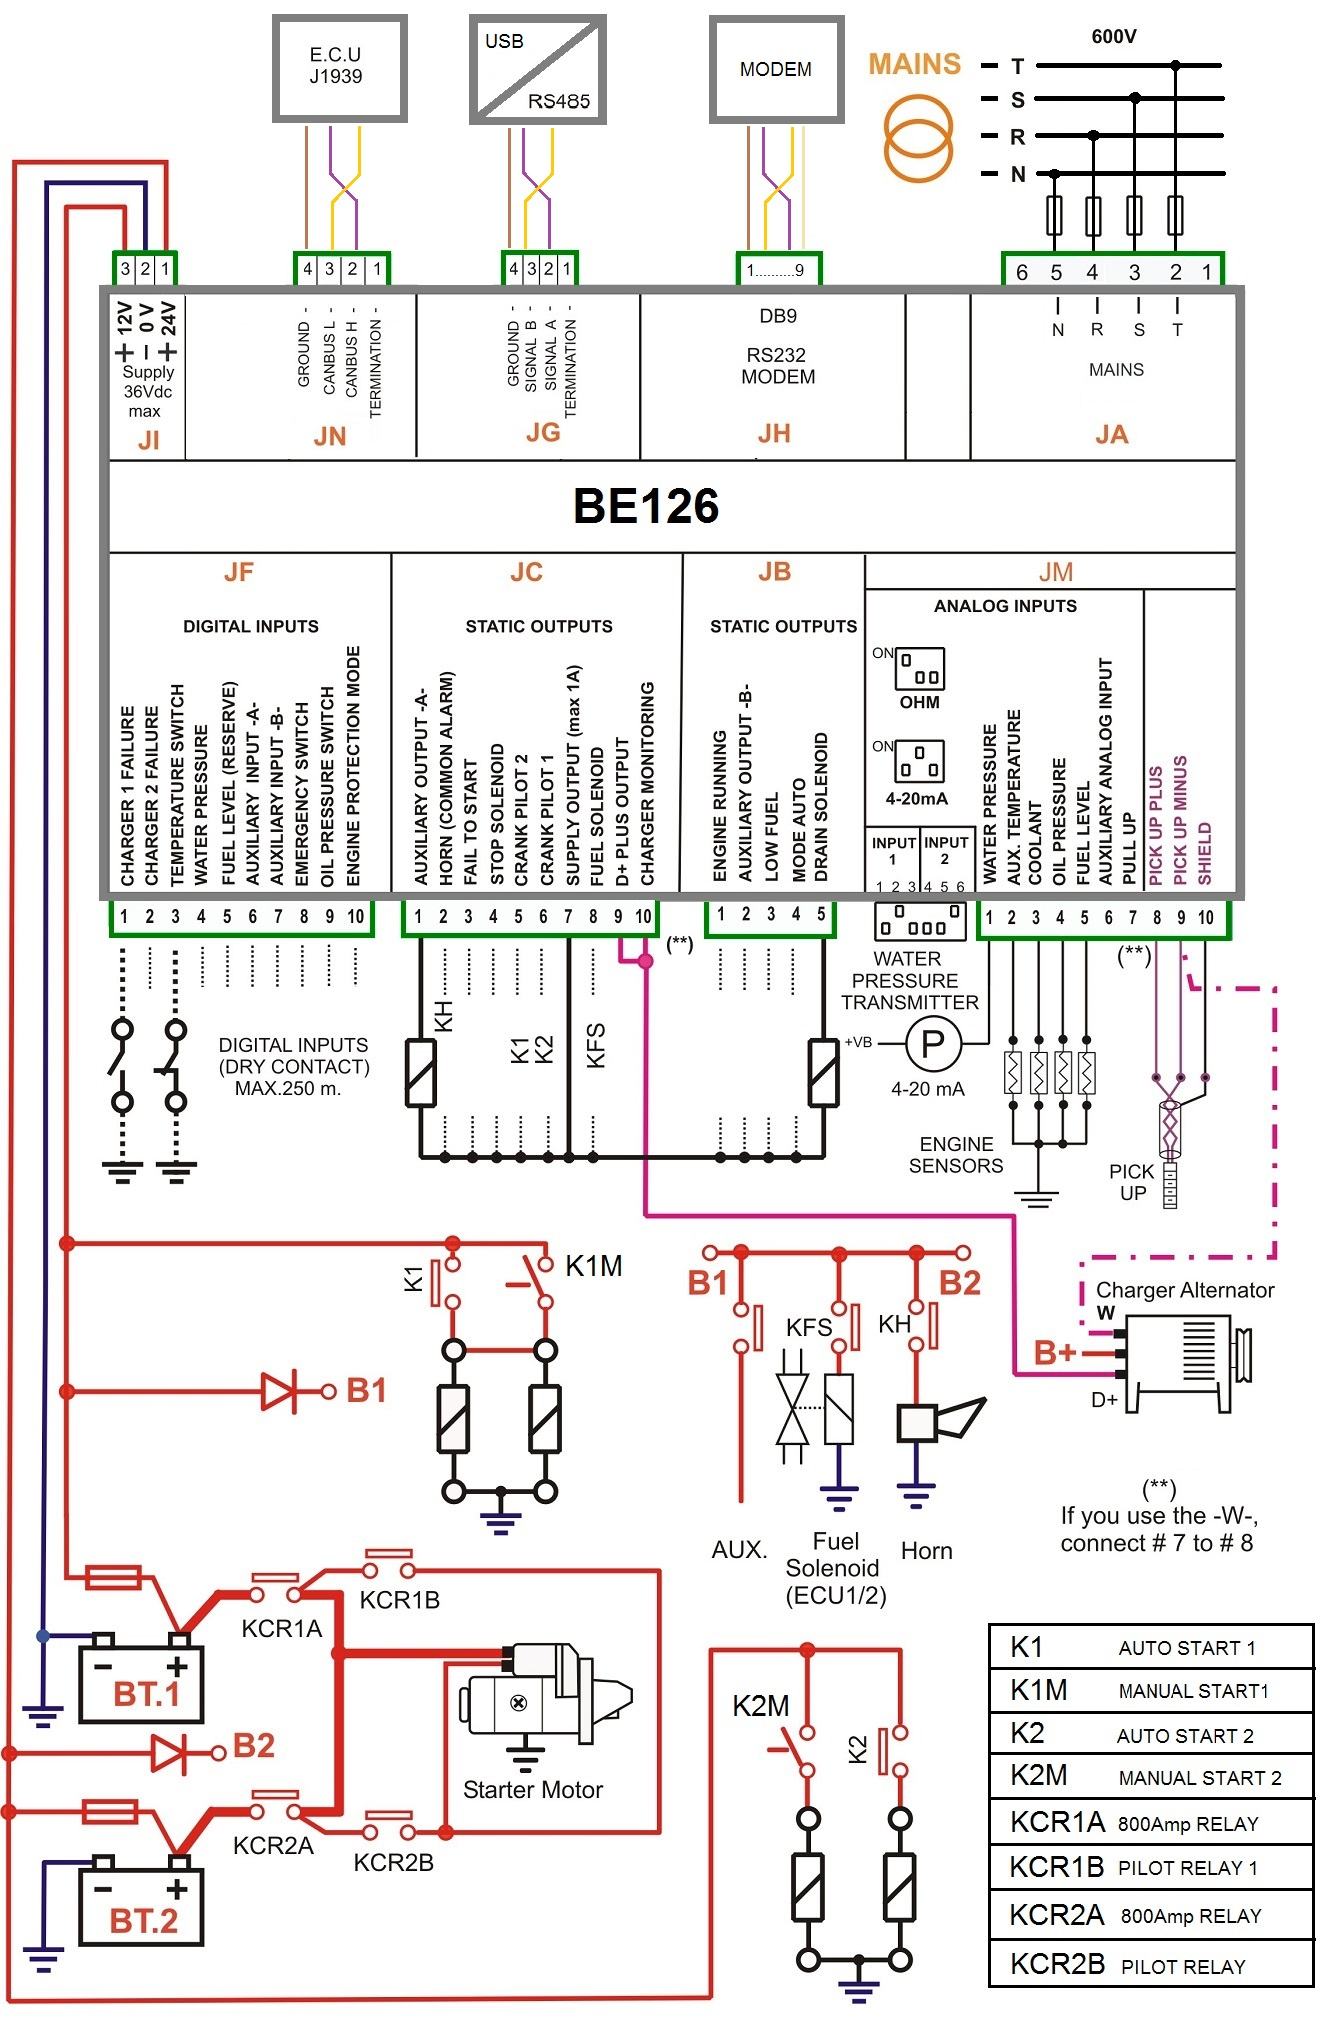 NFPA20 fire pump controller wiring diagram fire pump controller wiring diagram genset controller electrical control wiring diagrams at crackthecode.co